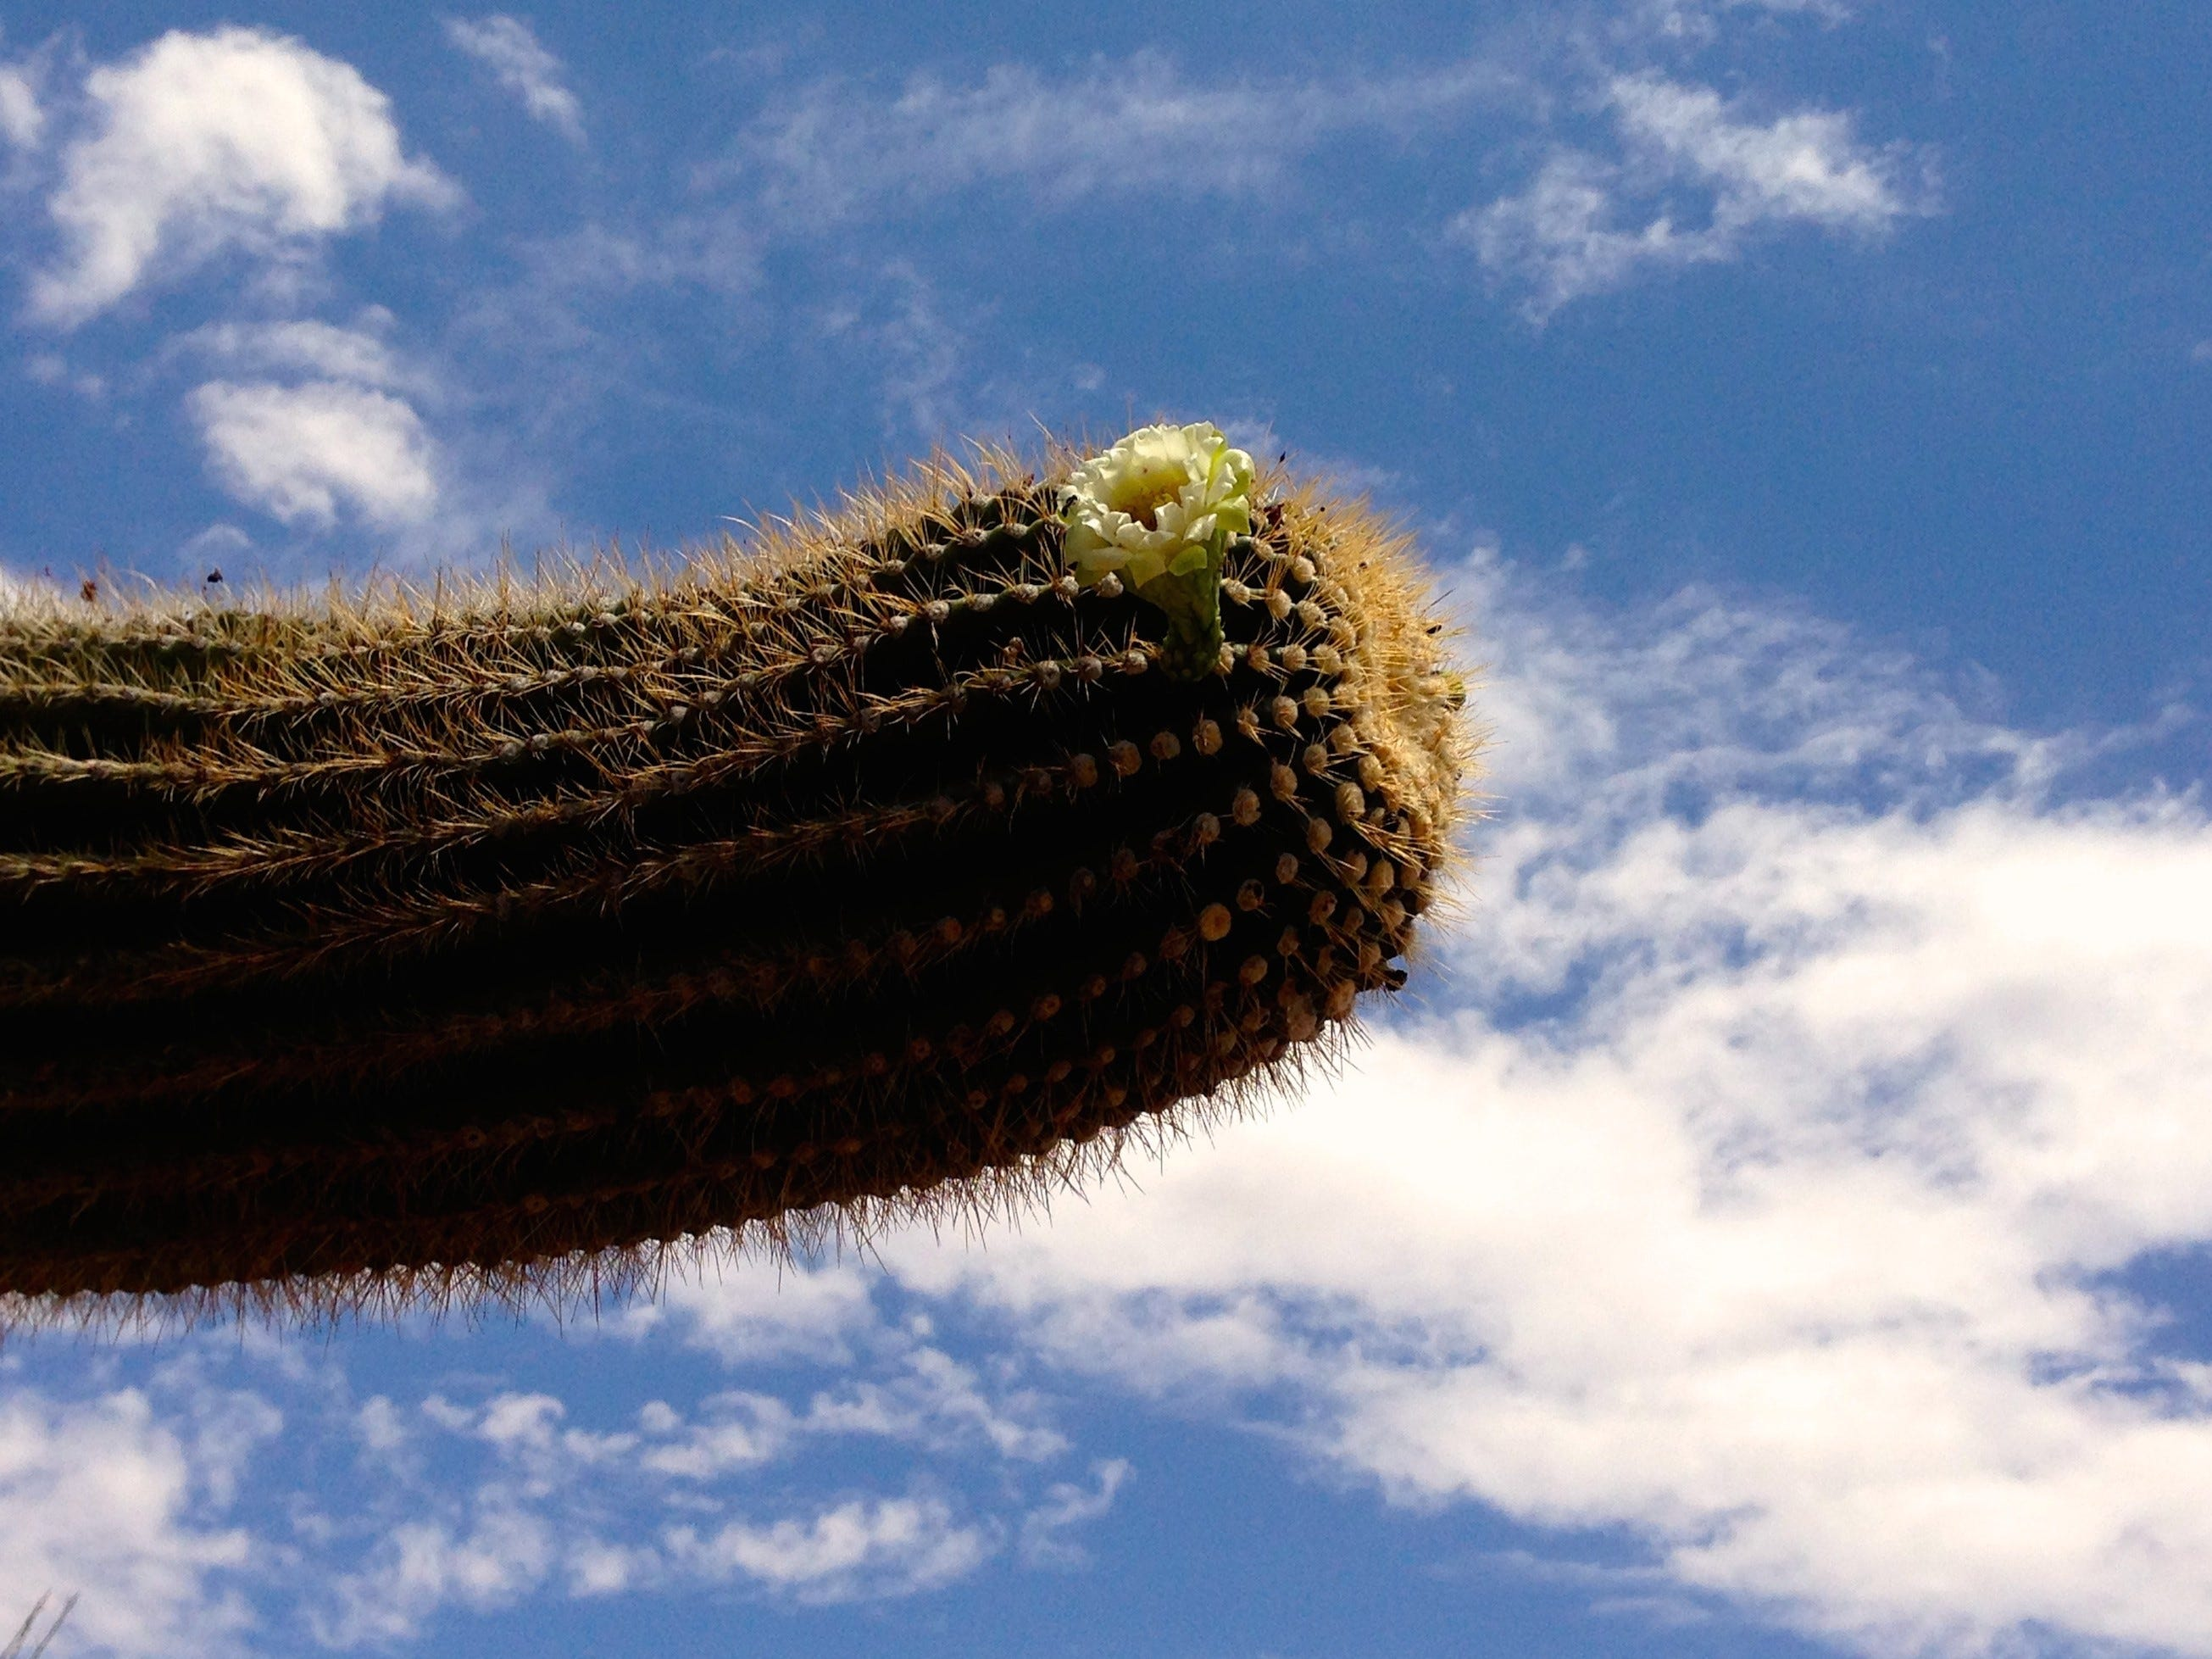 A flower blooms on the arm of a saguaro on the Jane Rau Trail.